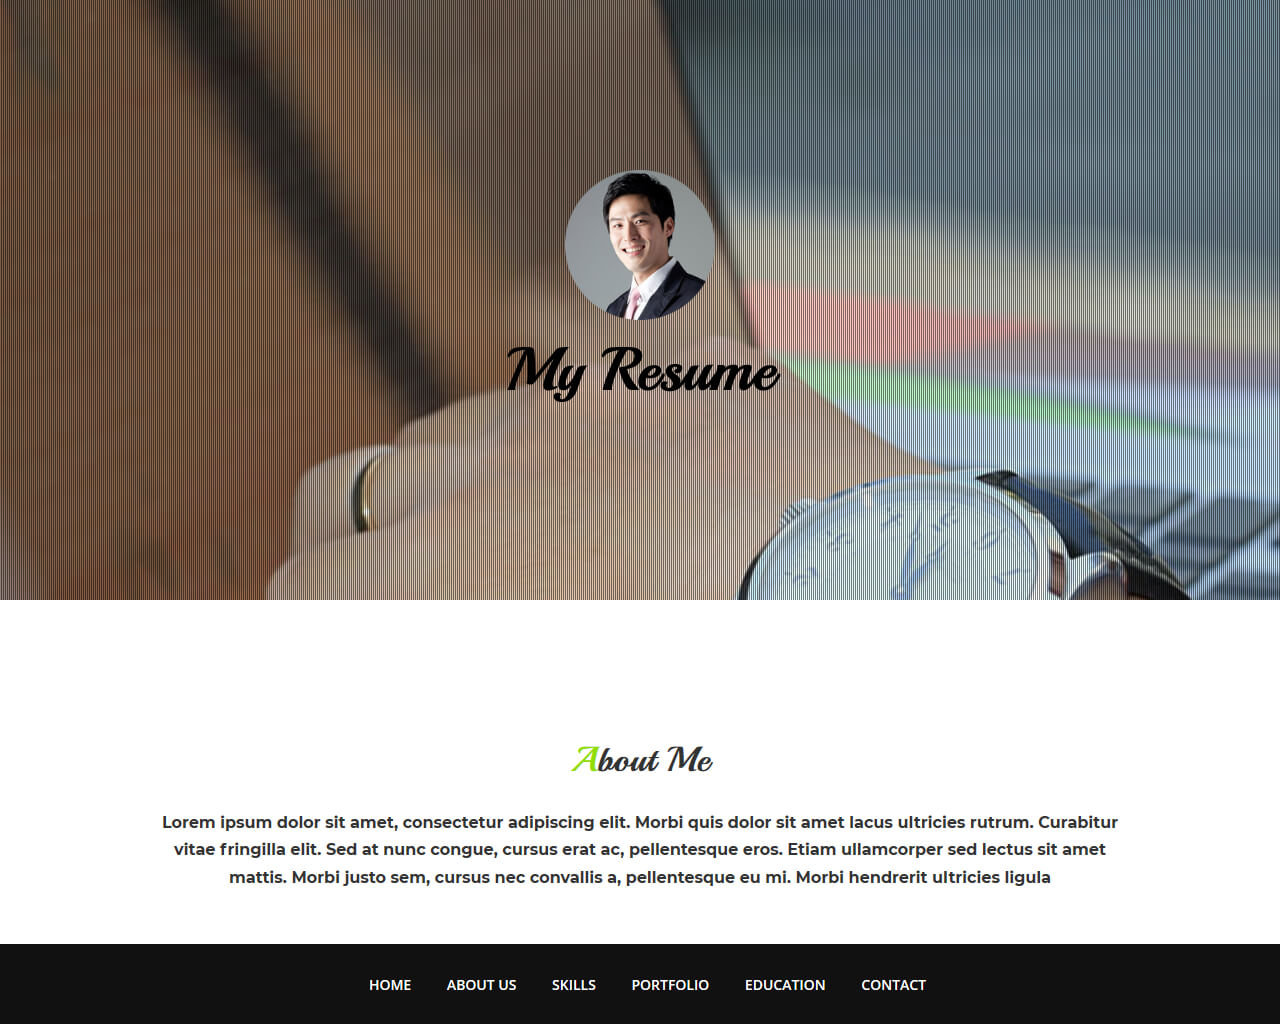 If You Are Looking For A Well Designed Spotless And Multipurpose Theme My Resume Is The Best Option This Template Cv VCard Centered